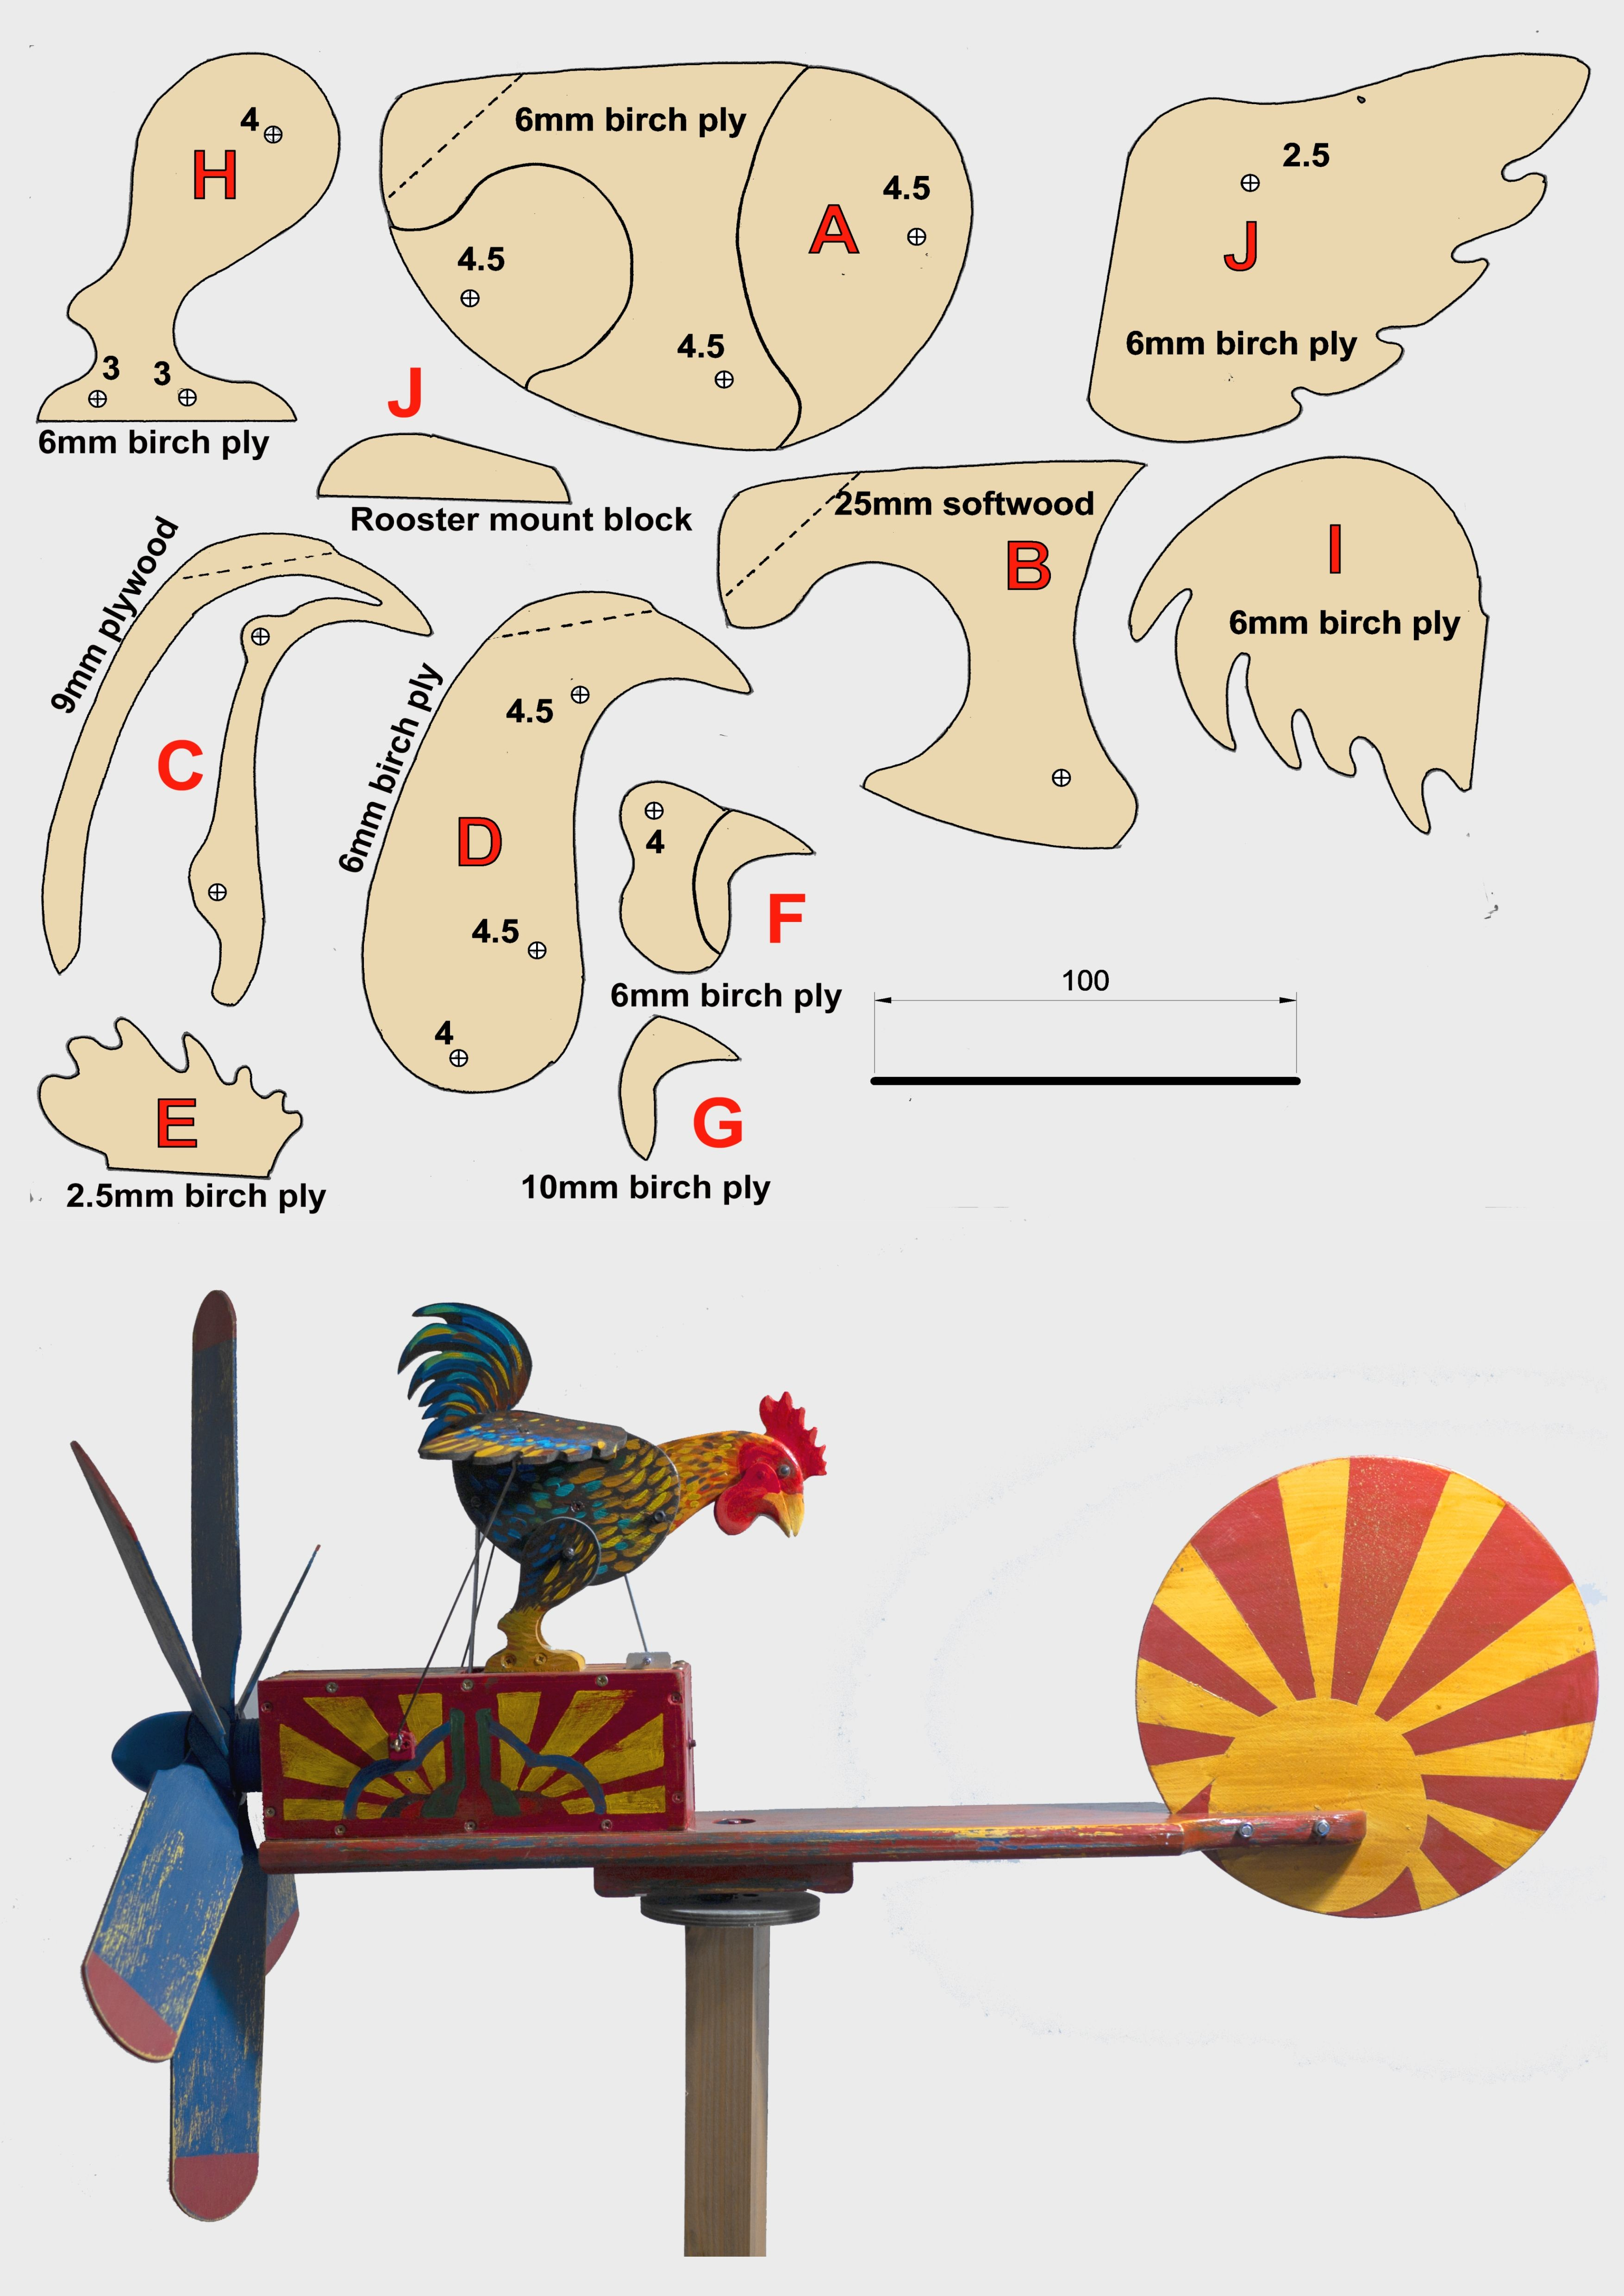 Rooster Whirligig With Templates In 2021 Woodworking Projects Gifts Wood Craft Patterns Whirligigs Patterns